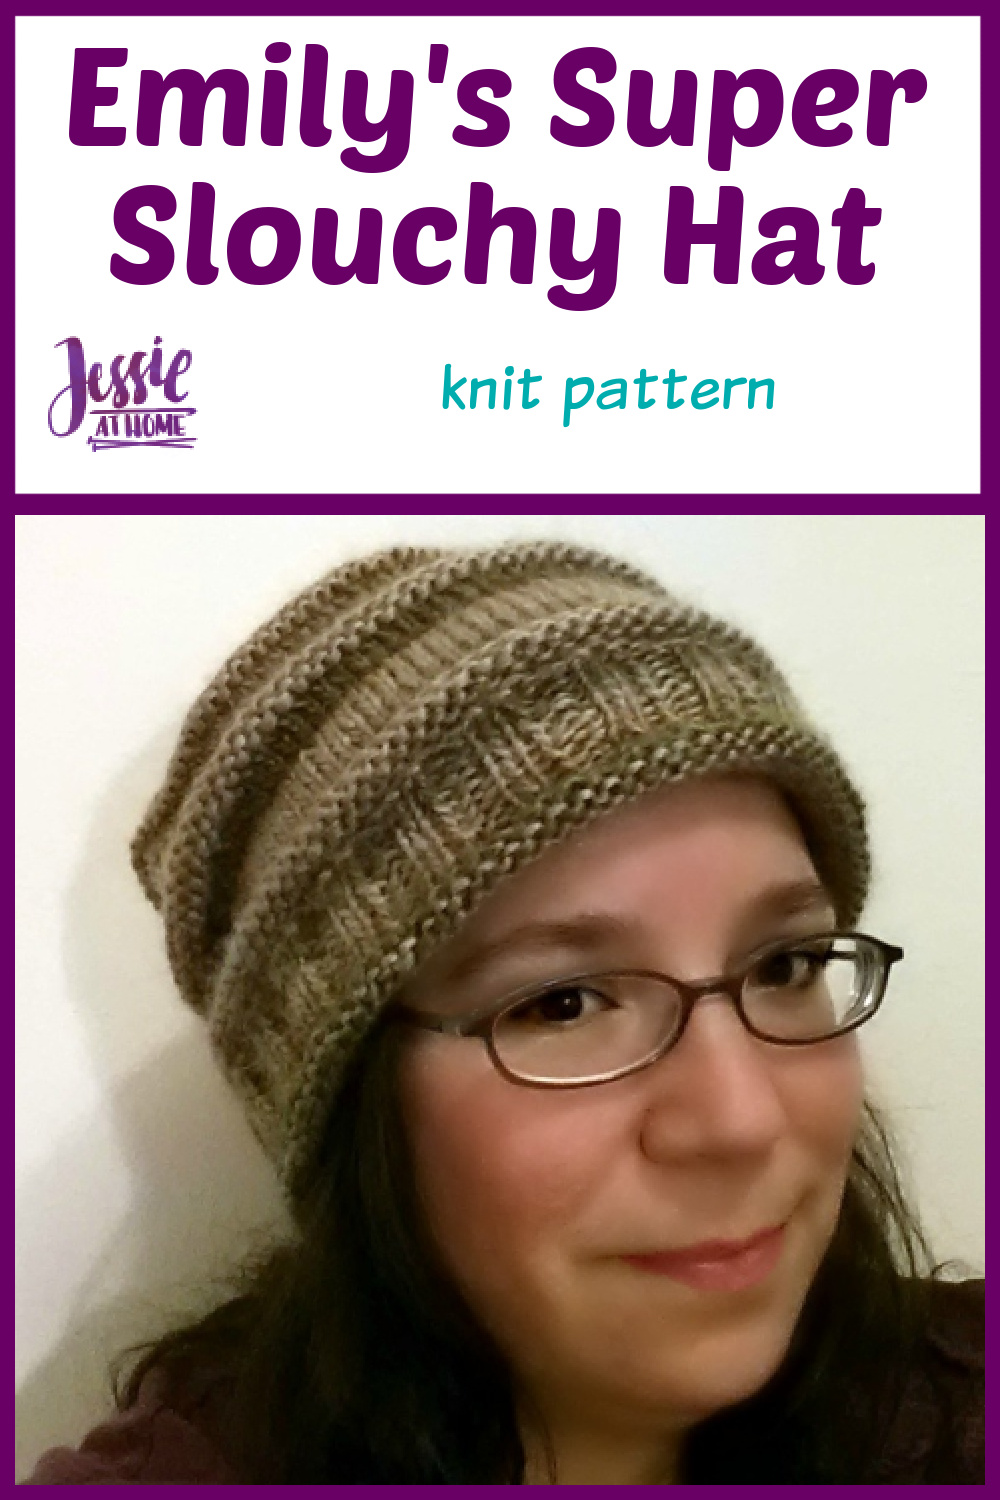 Emily's Super Slouchy Knit Hat - knit pattern by Jessie At Home - Pin 1